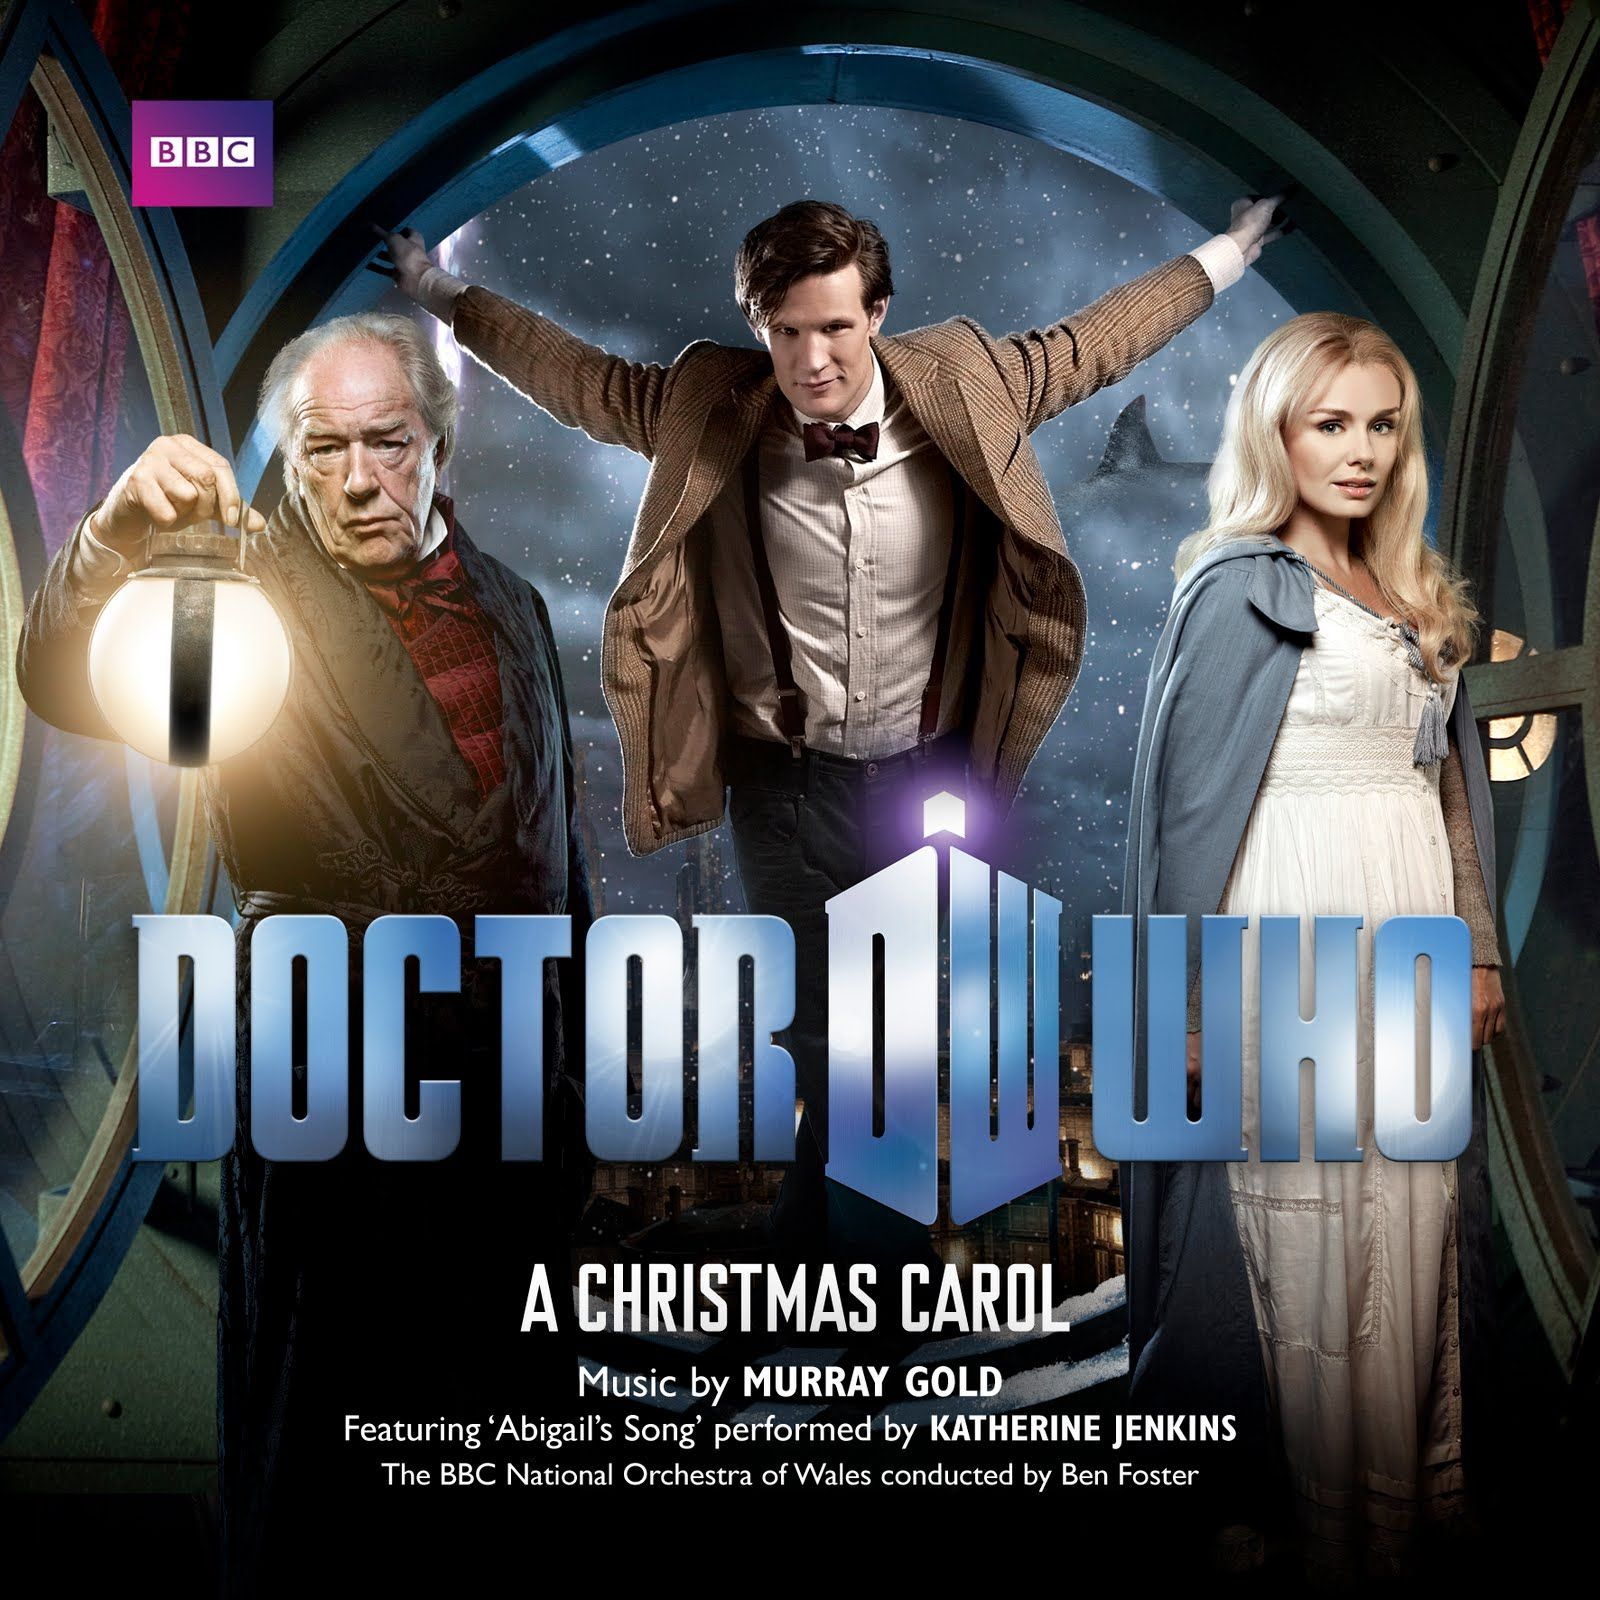 Doctor Who: A Christmas Carol Soundtrack - Cover & Info (With images) | Doctor who christmas ...